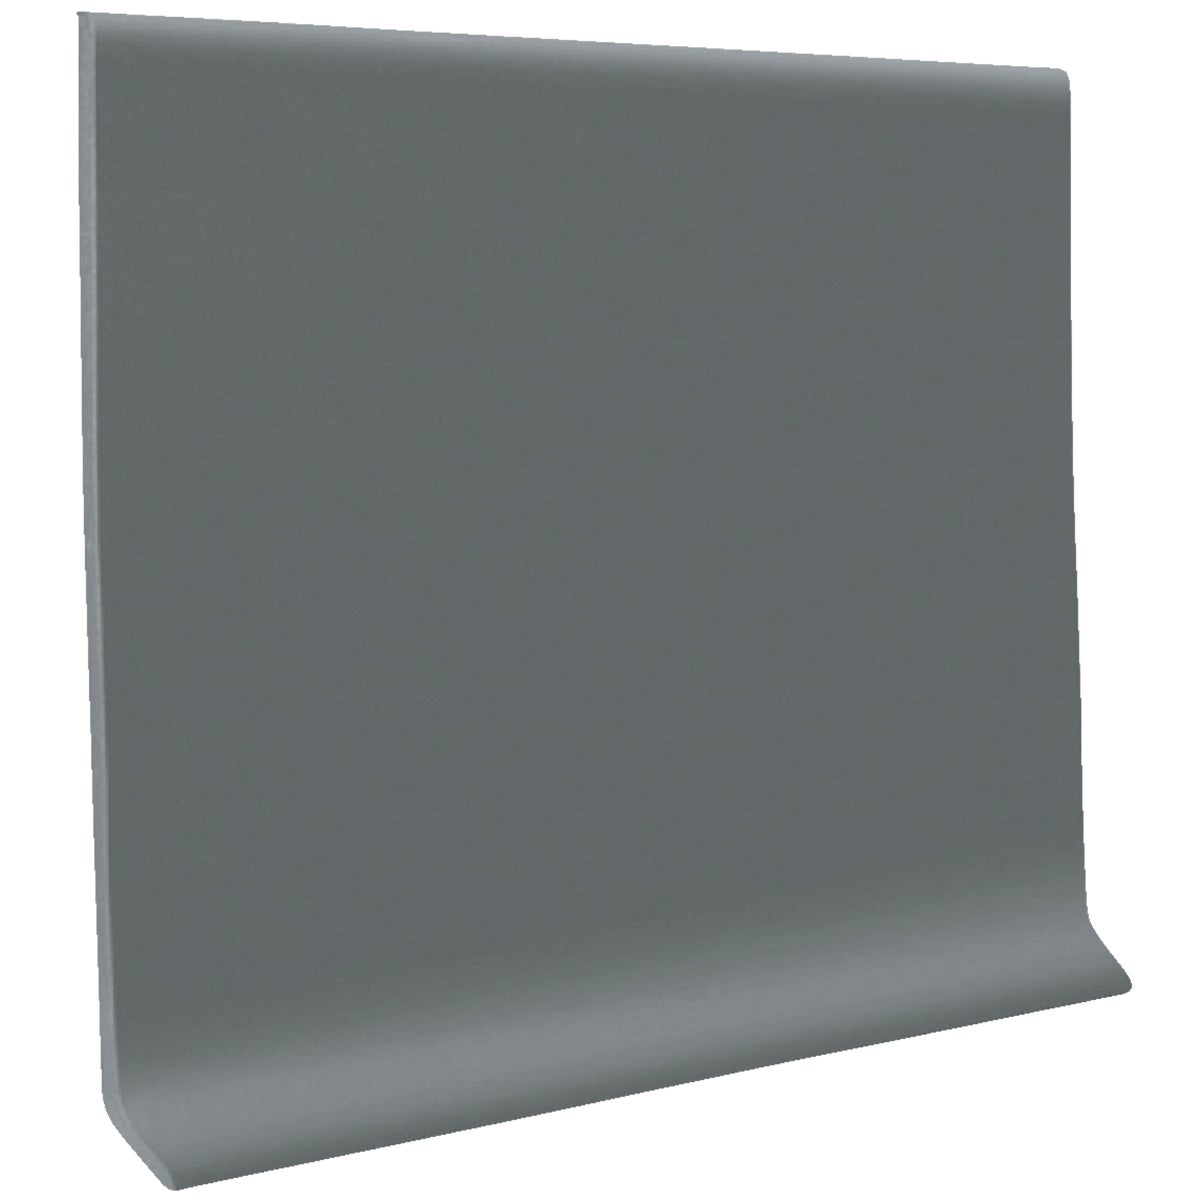 "4""X4' GRAY WALL BASE - H1640C53P150 by Roppe Corporation"